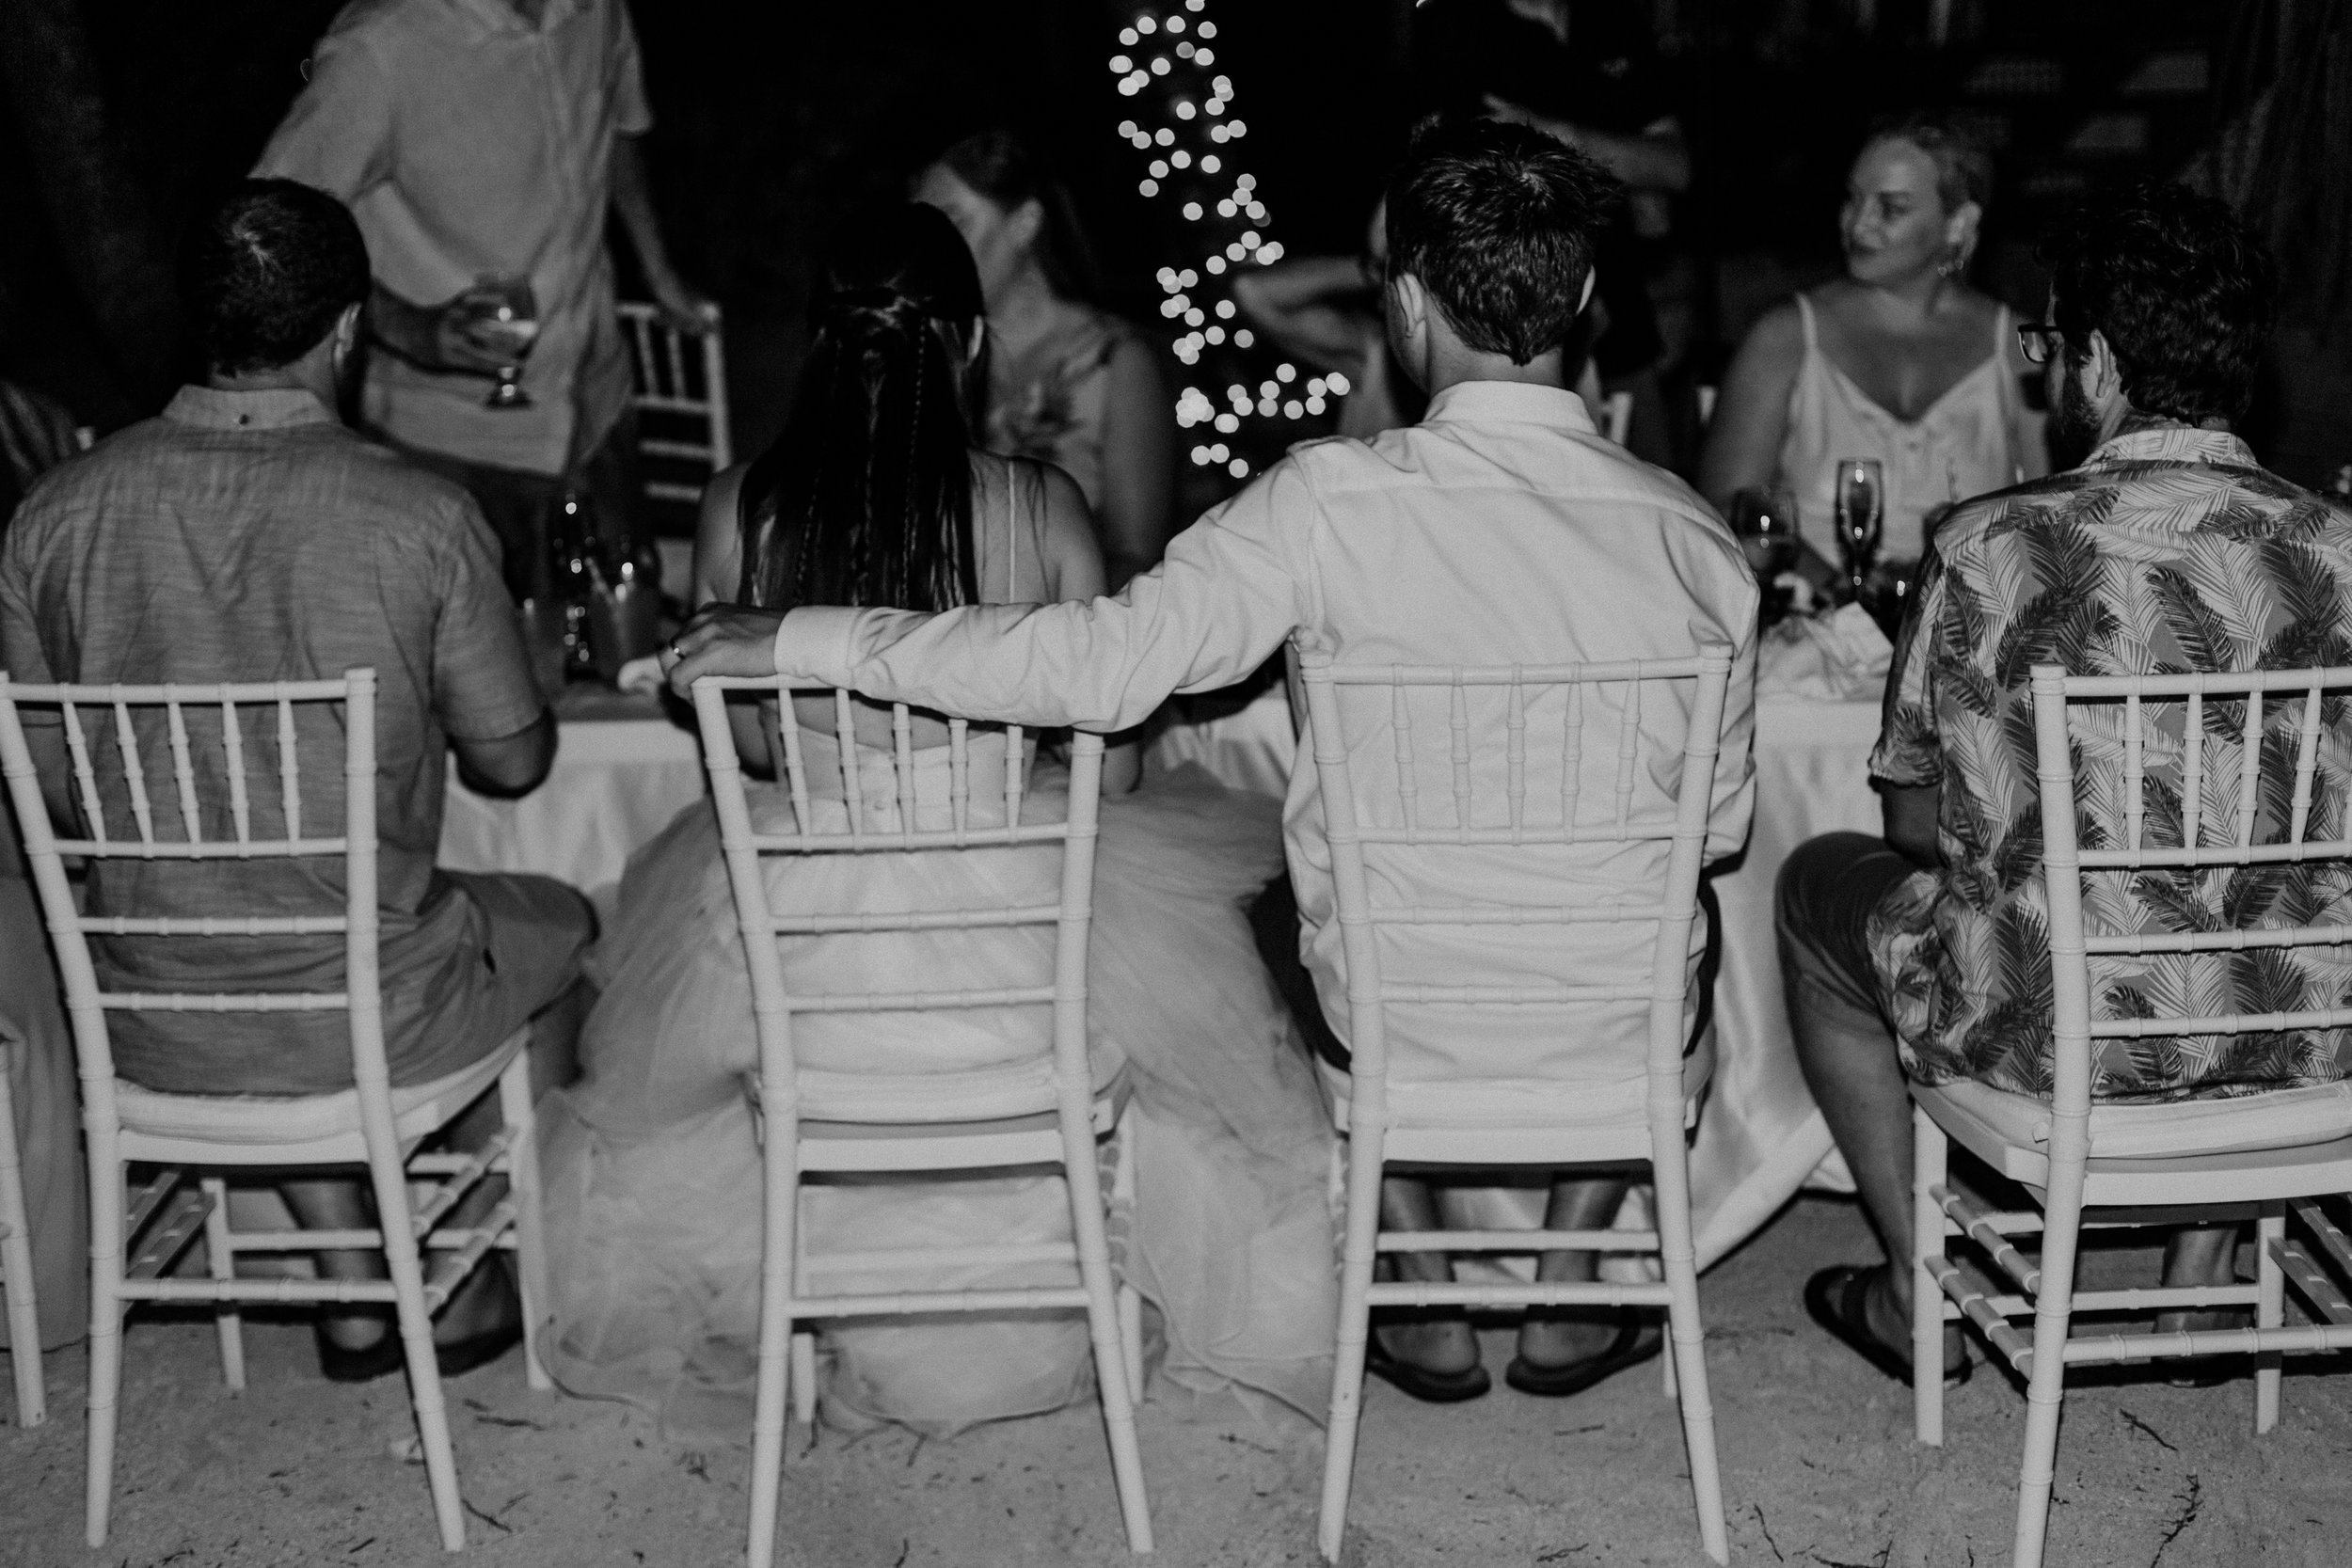 san-pescador-belize-wedding-christinemariephoto-j-k-162.jpg